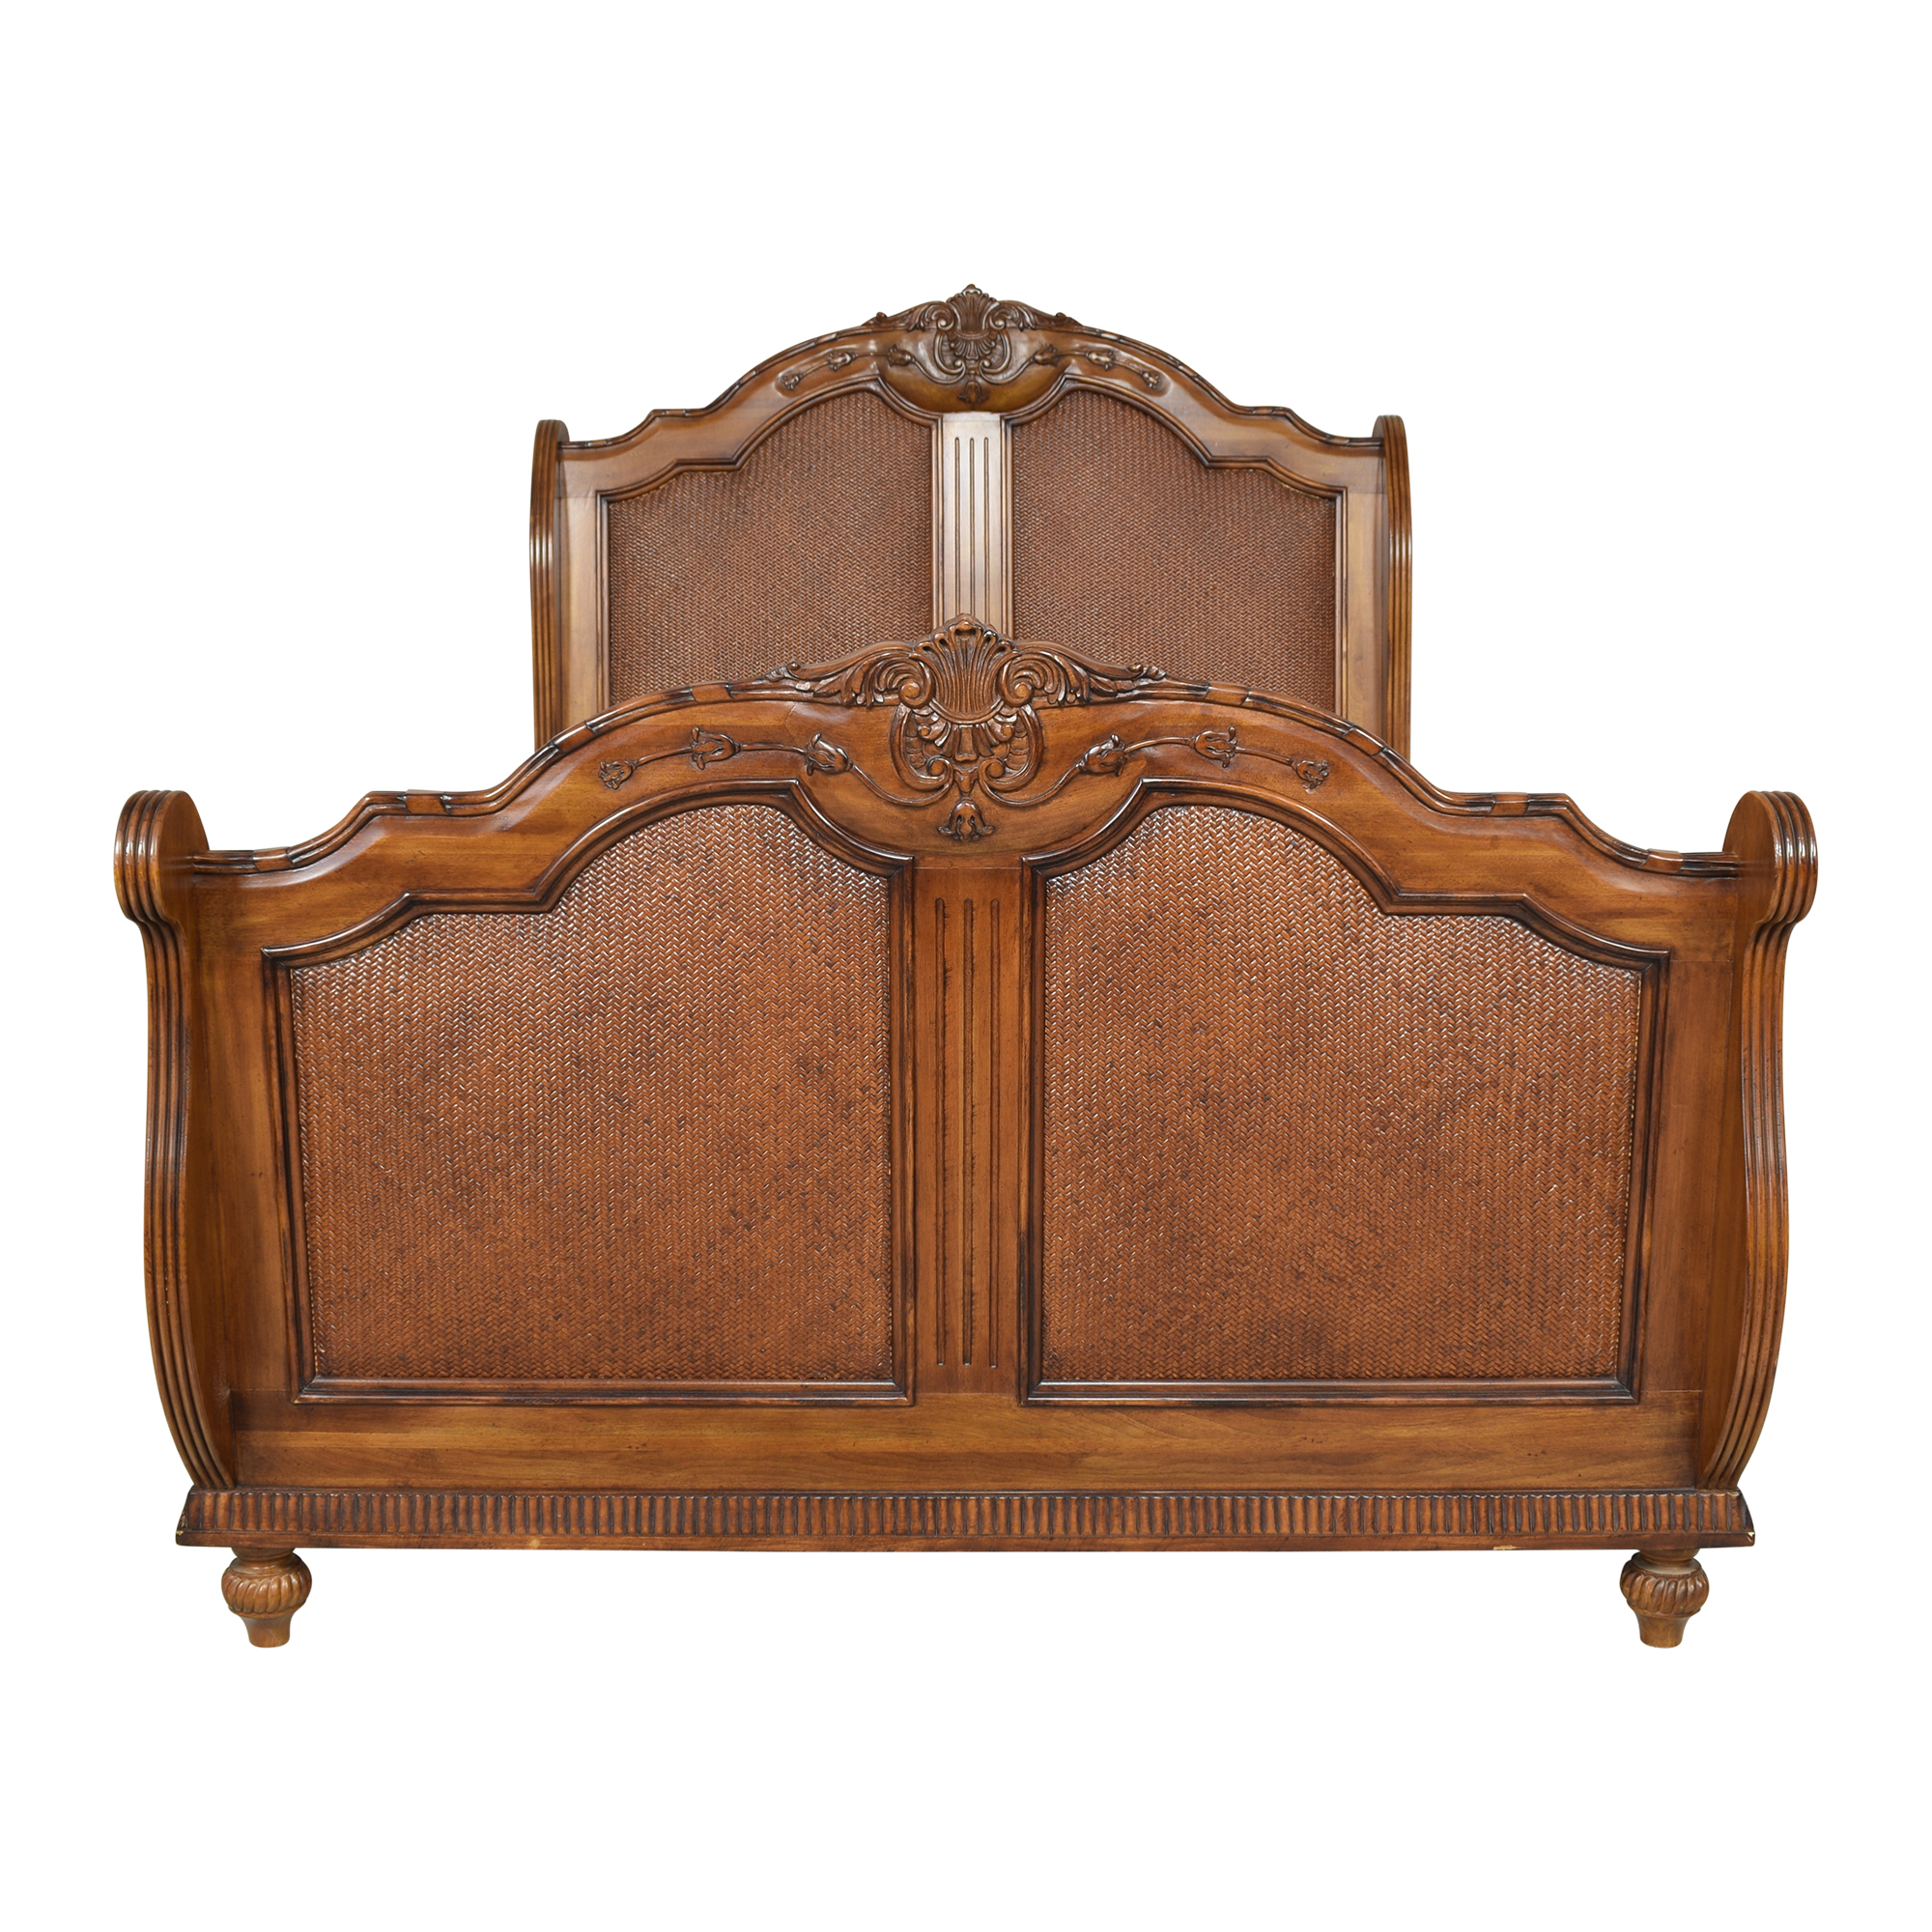 Laura Ashley Laura Ashley Carved Sleigh Queen Bed on sale